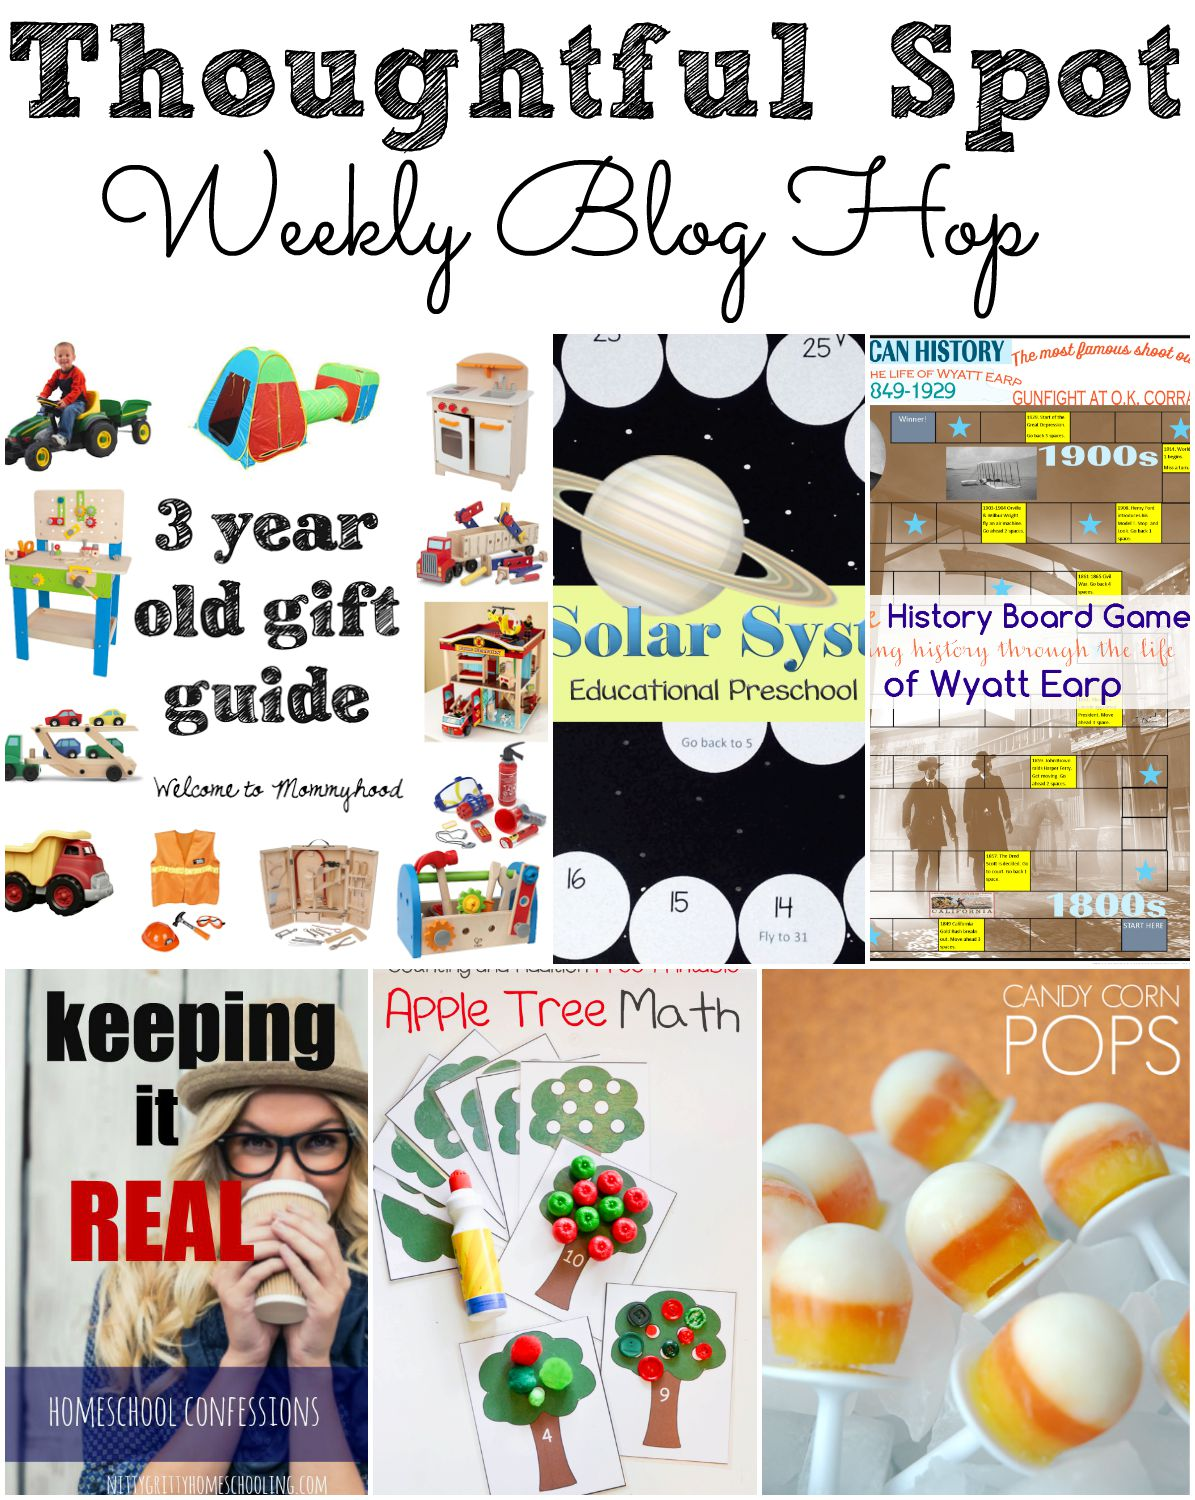 Thoughtful Spot Weekly Blog Hop! A weekly blog hop where family friendly recipes, crafts, homeschooling, and parenting ideas are shared!